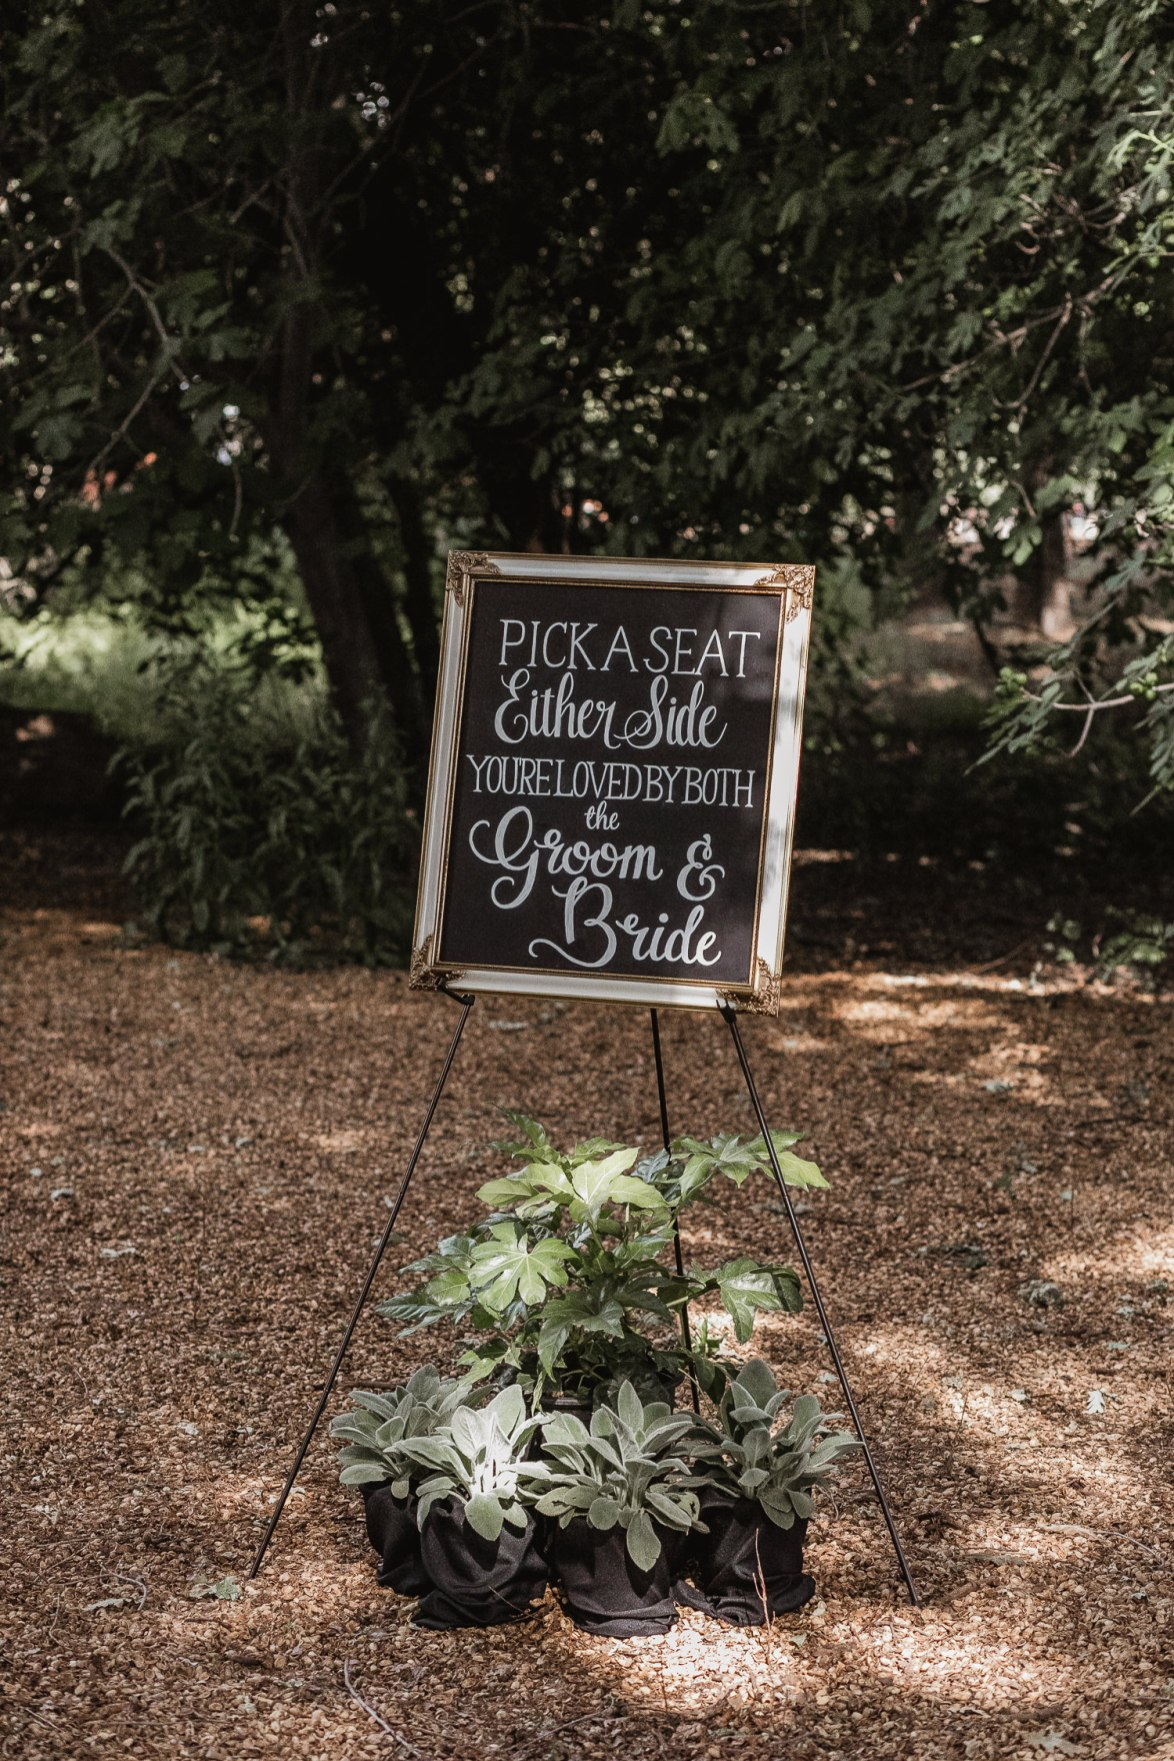 Gorgeous outdoor horse ranch wedding details.